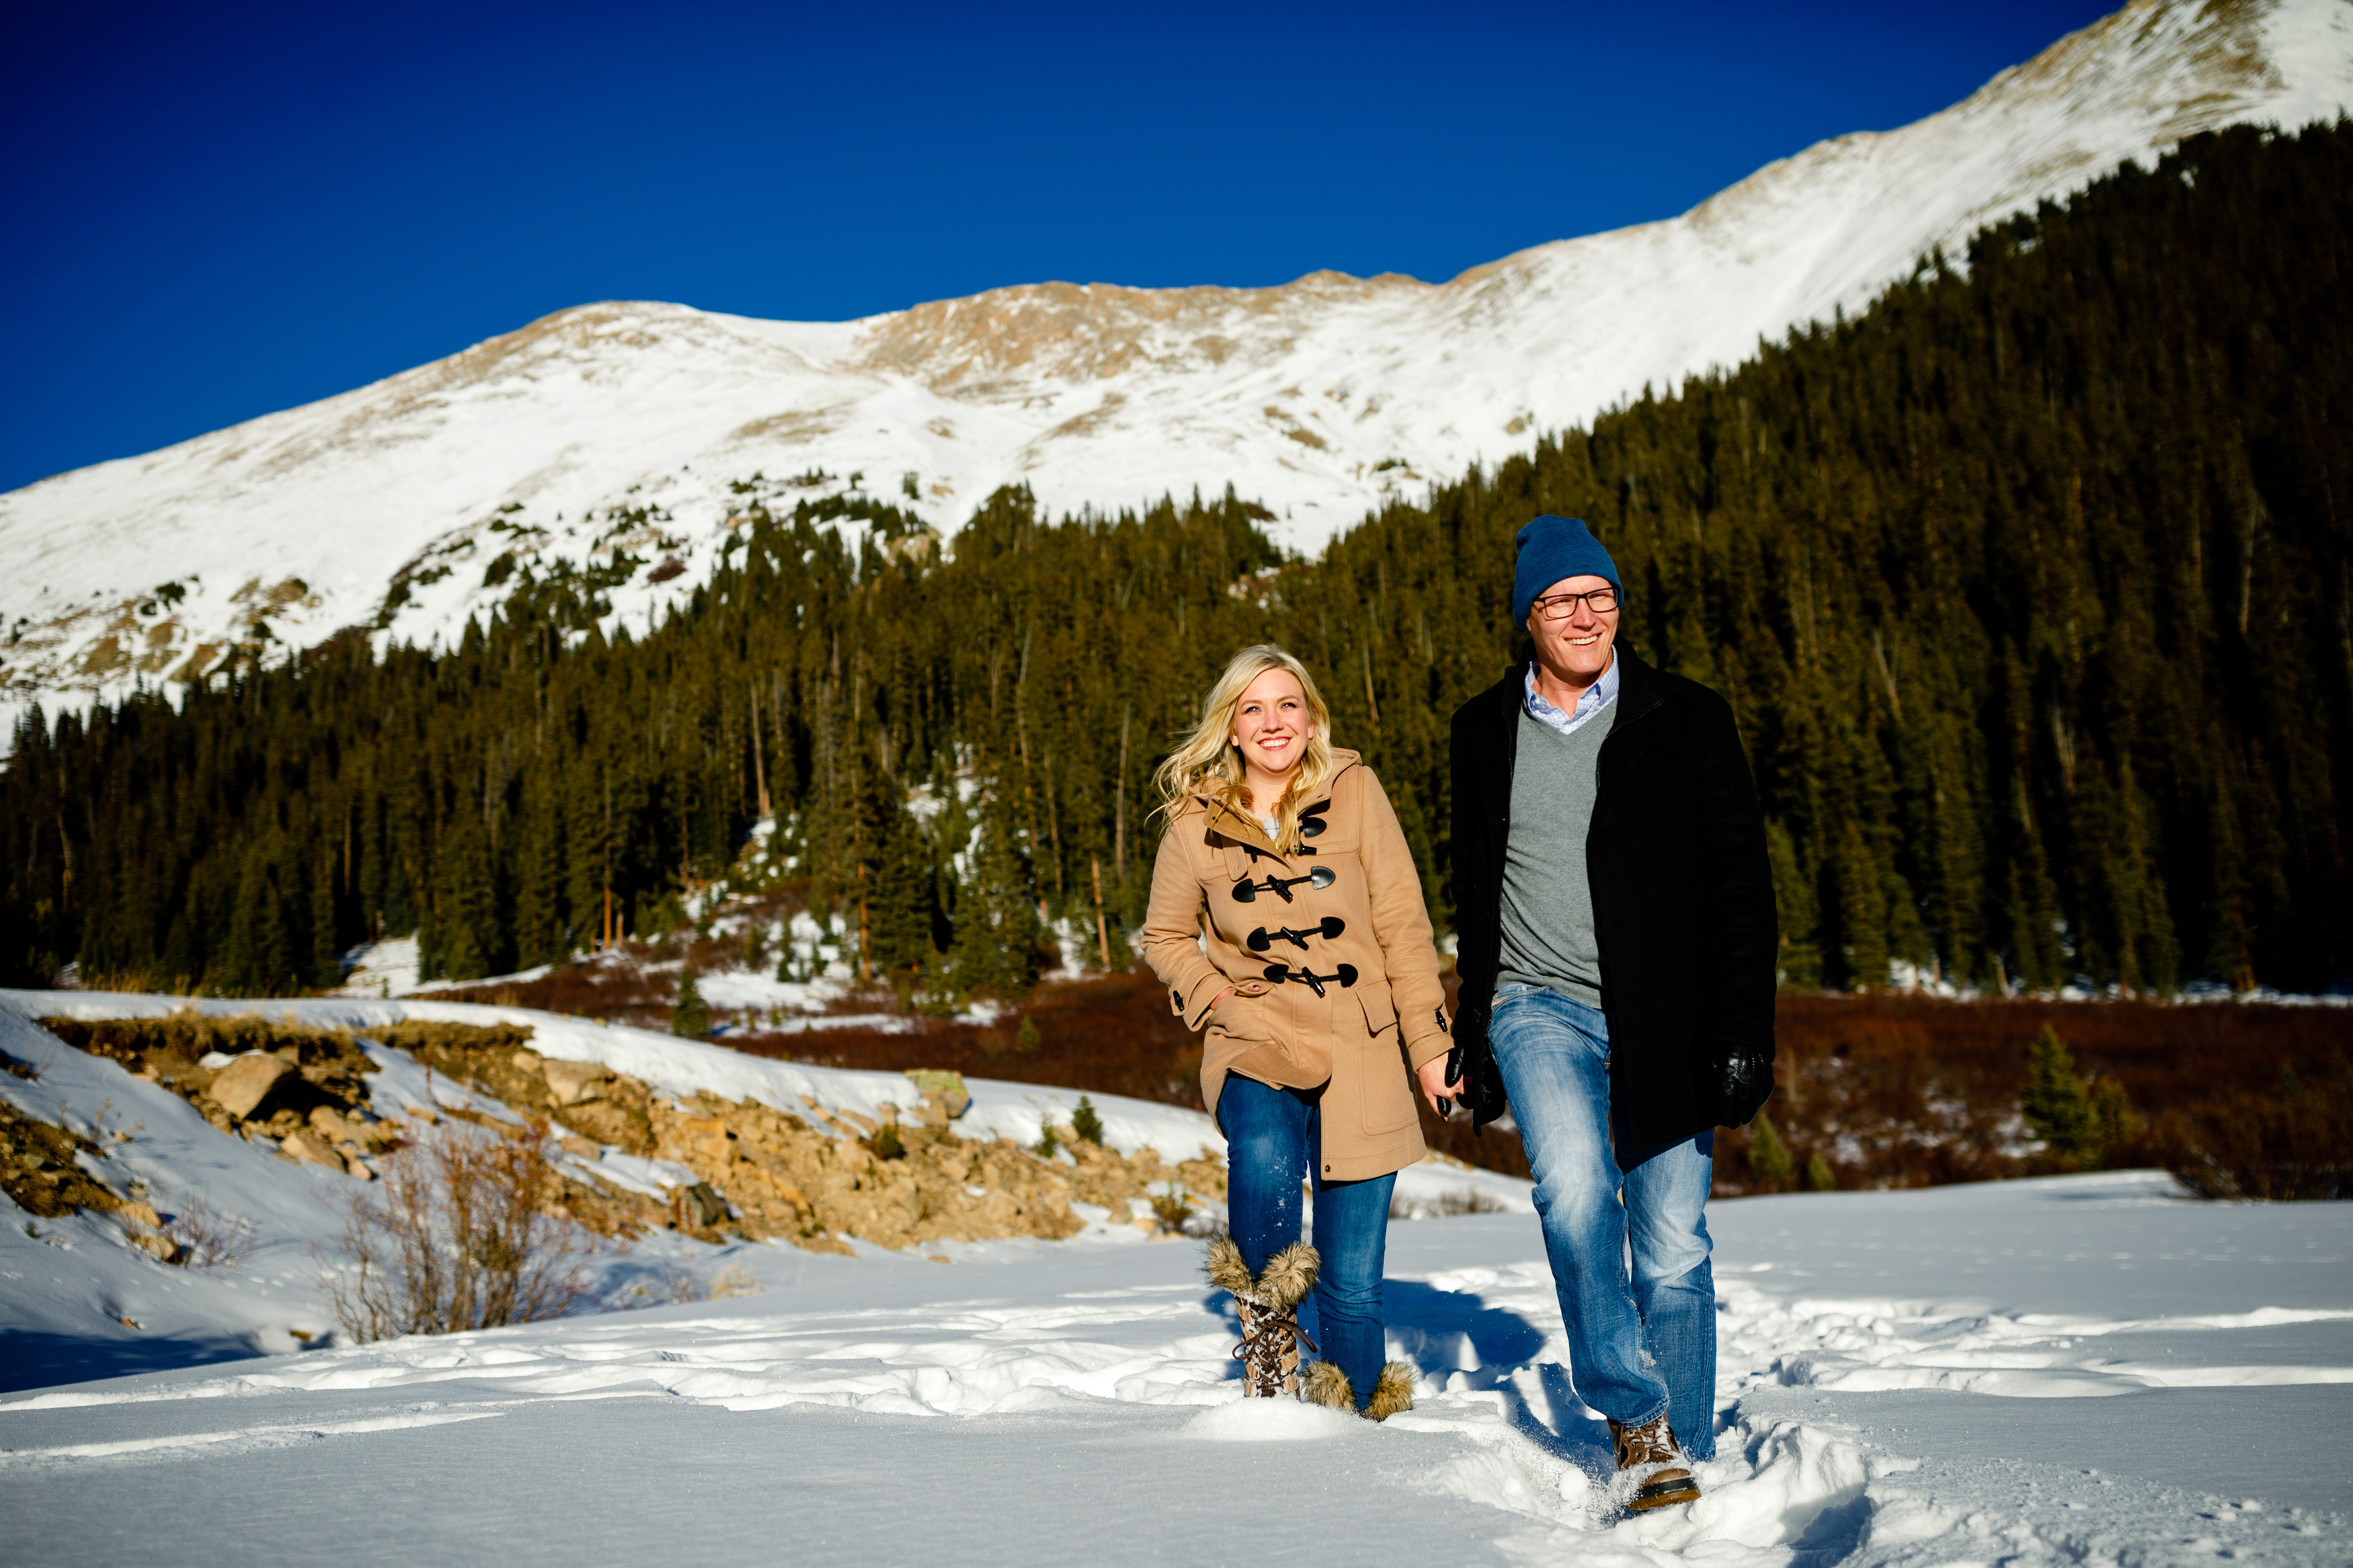 Photos taken near Arapahoe Basin during our Keystone Engagement session with John & Erin.